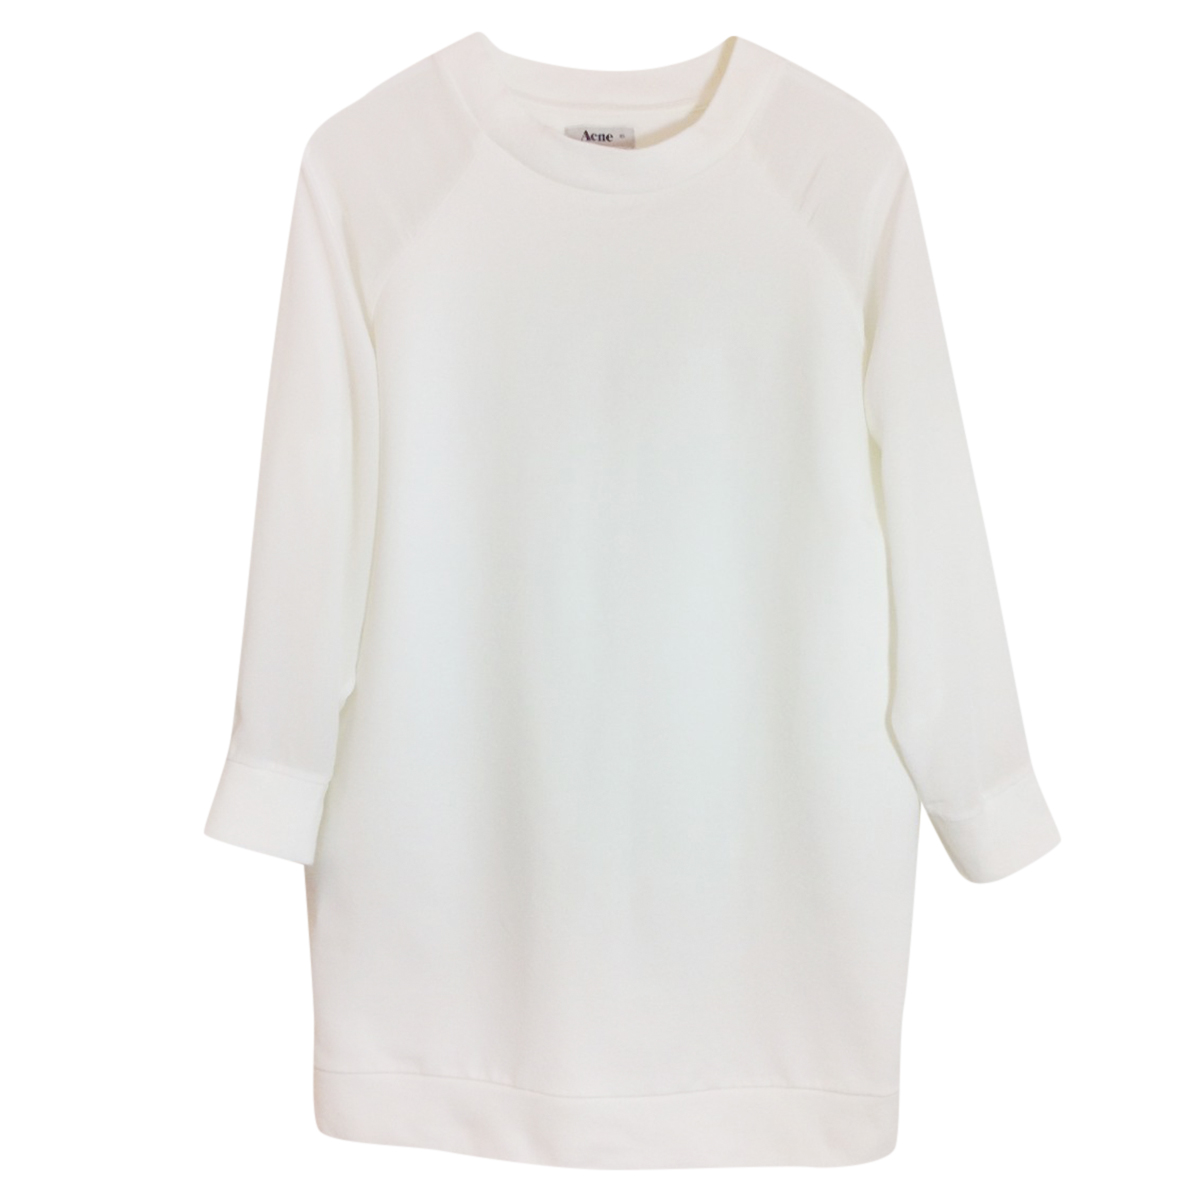 Acne cotton & silk sweatshirt